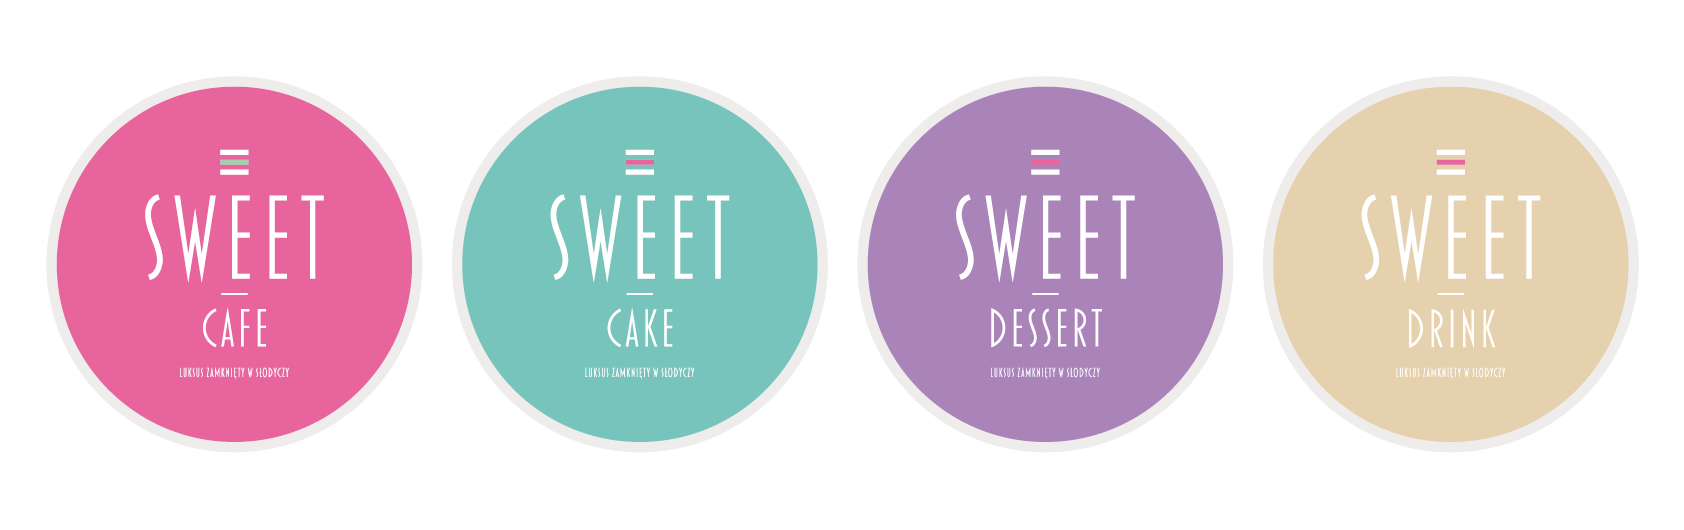 Sweet Cafe - logo